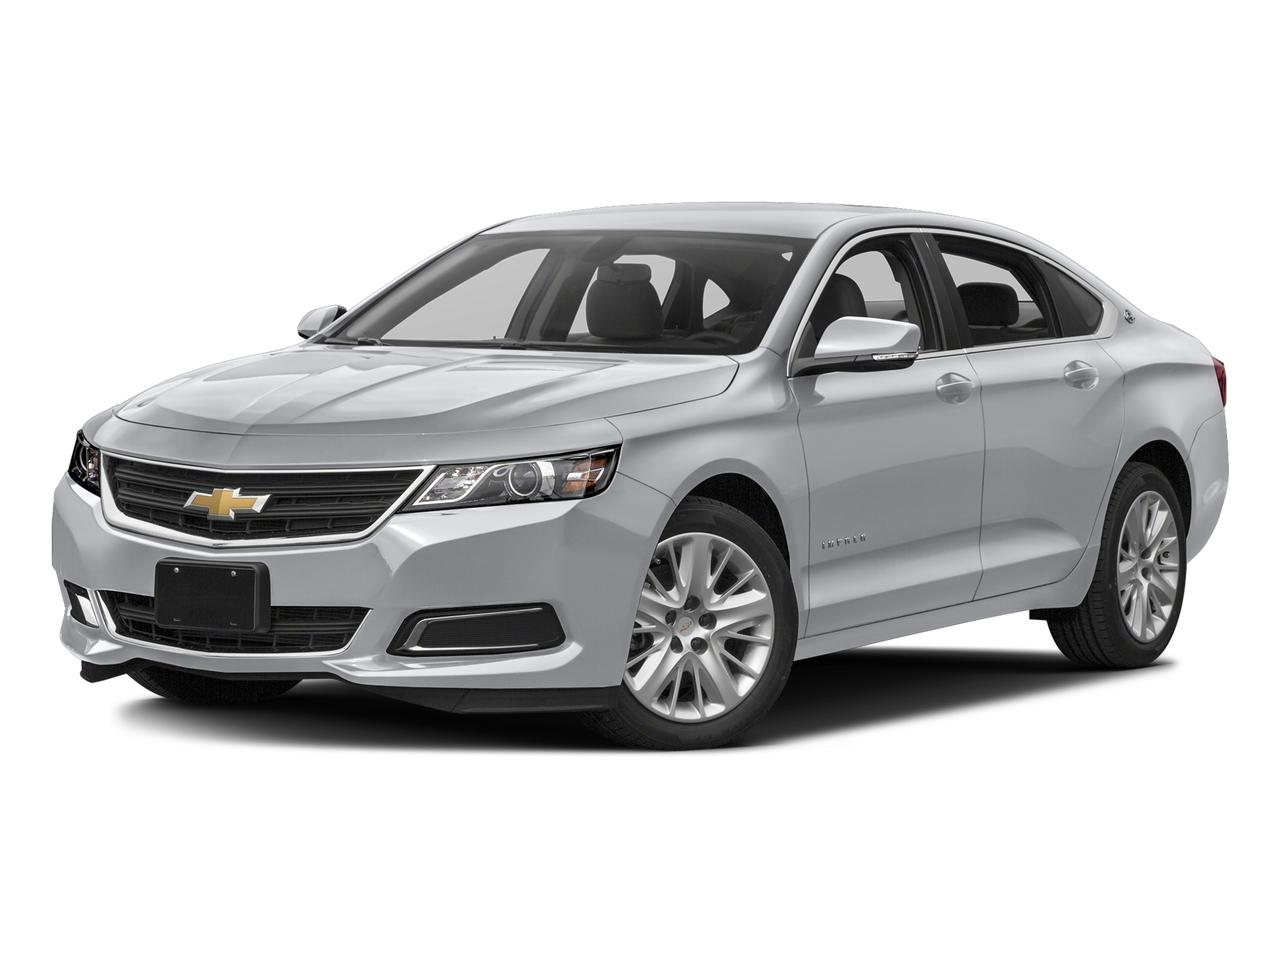 2016 Chevrolet Impala Vehicle Photo in Joliet, IL 60586